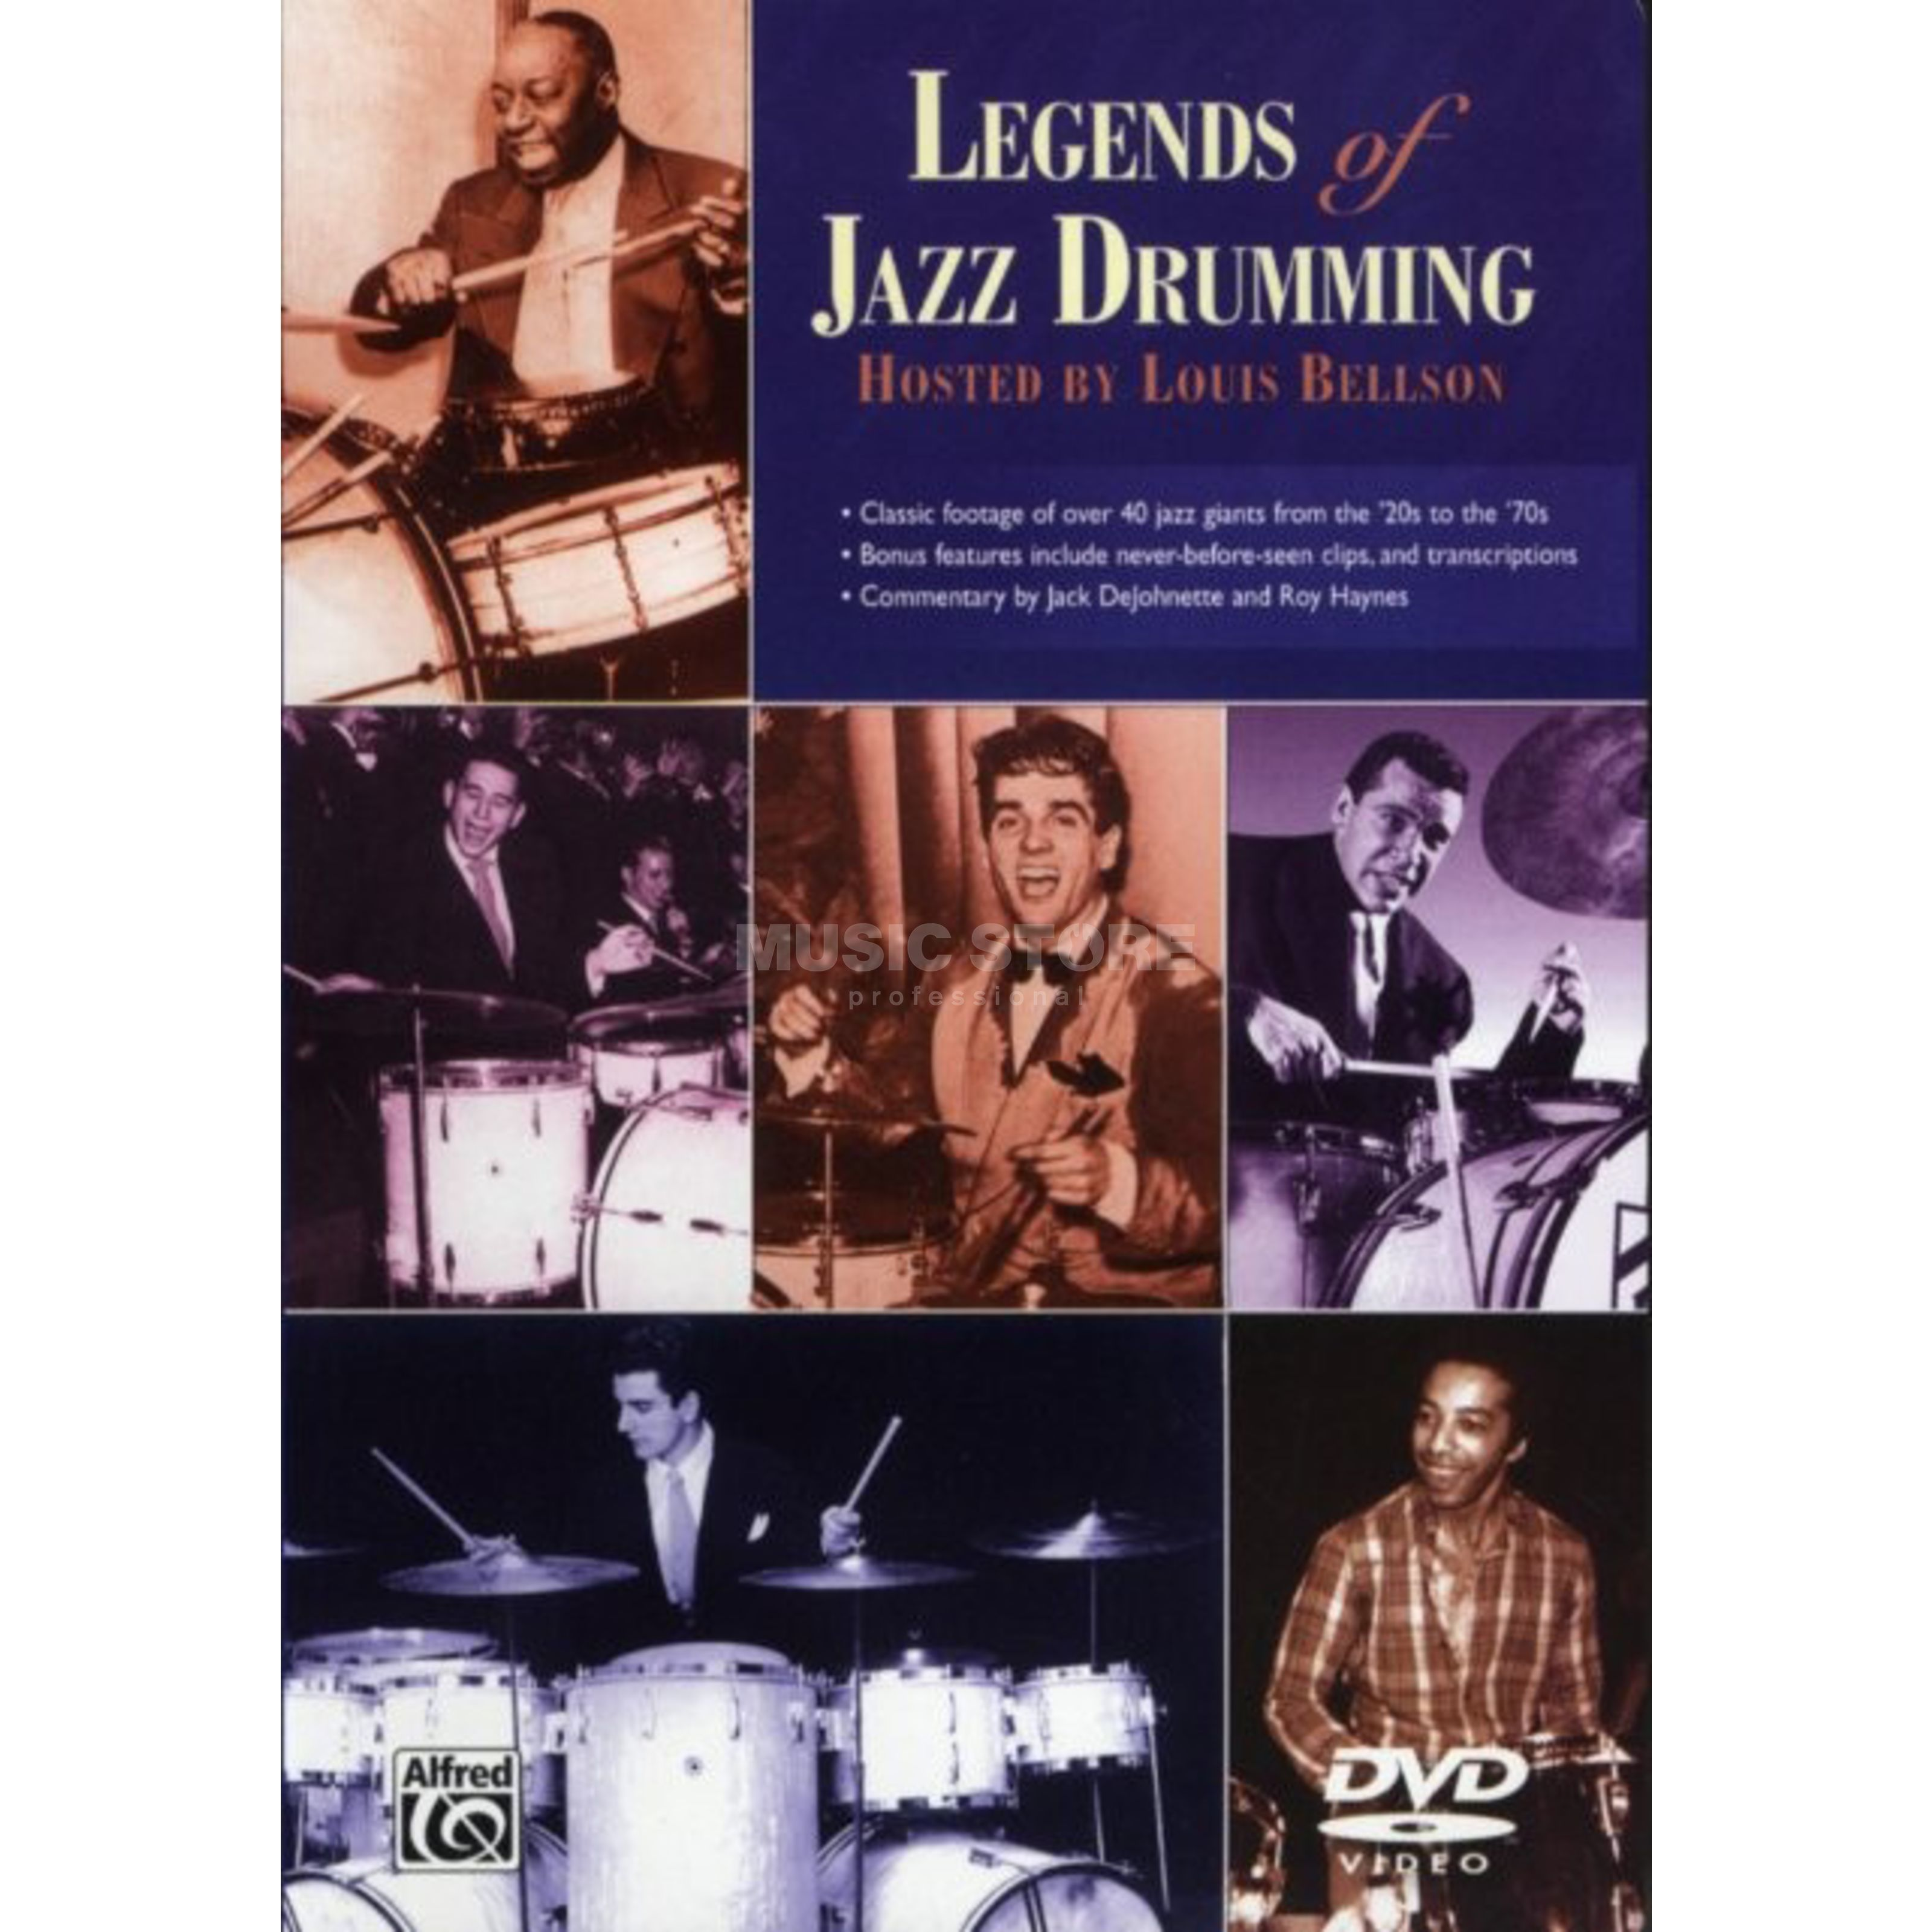 an analysis of the history of jazz and classical music History of jazz music origins, styles and musicians featuring timeline, photos, festivals, glossary, guitar & piano chords, scales & online lessons.